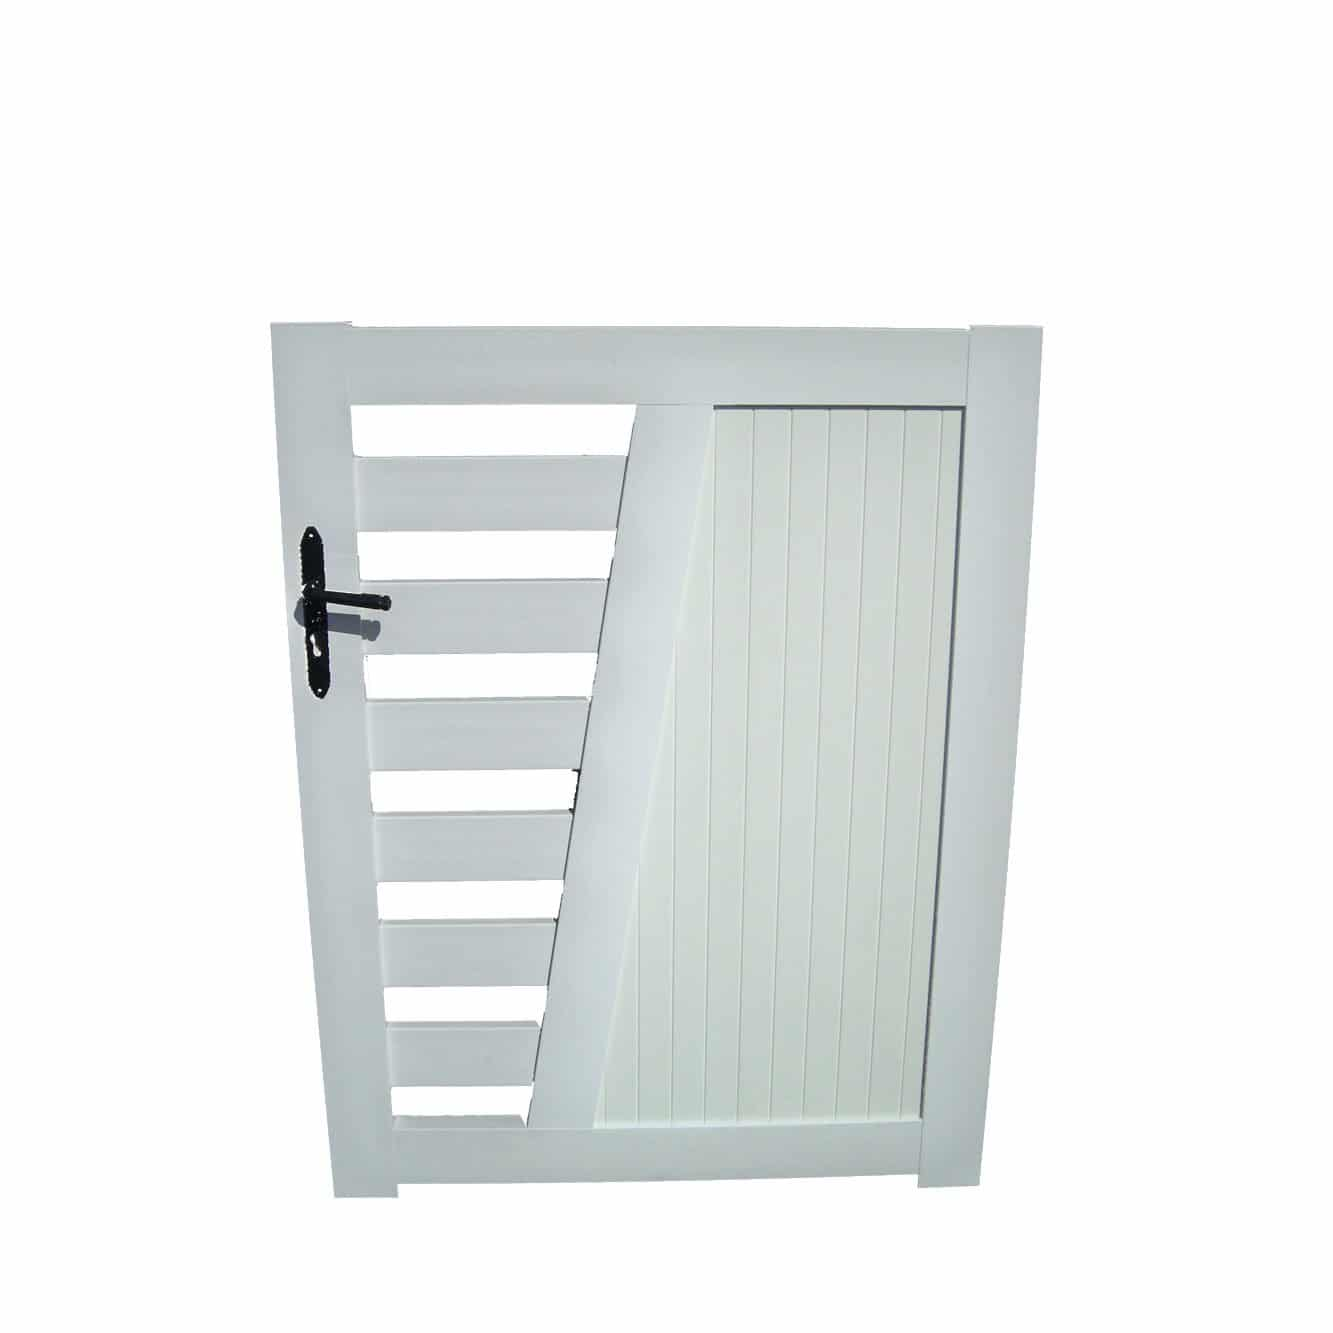 Portillon pvc blanc for Portillon 1m20 hauteur